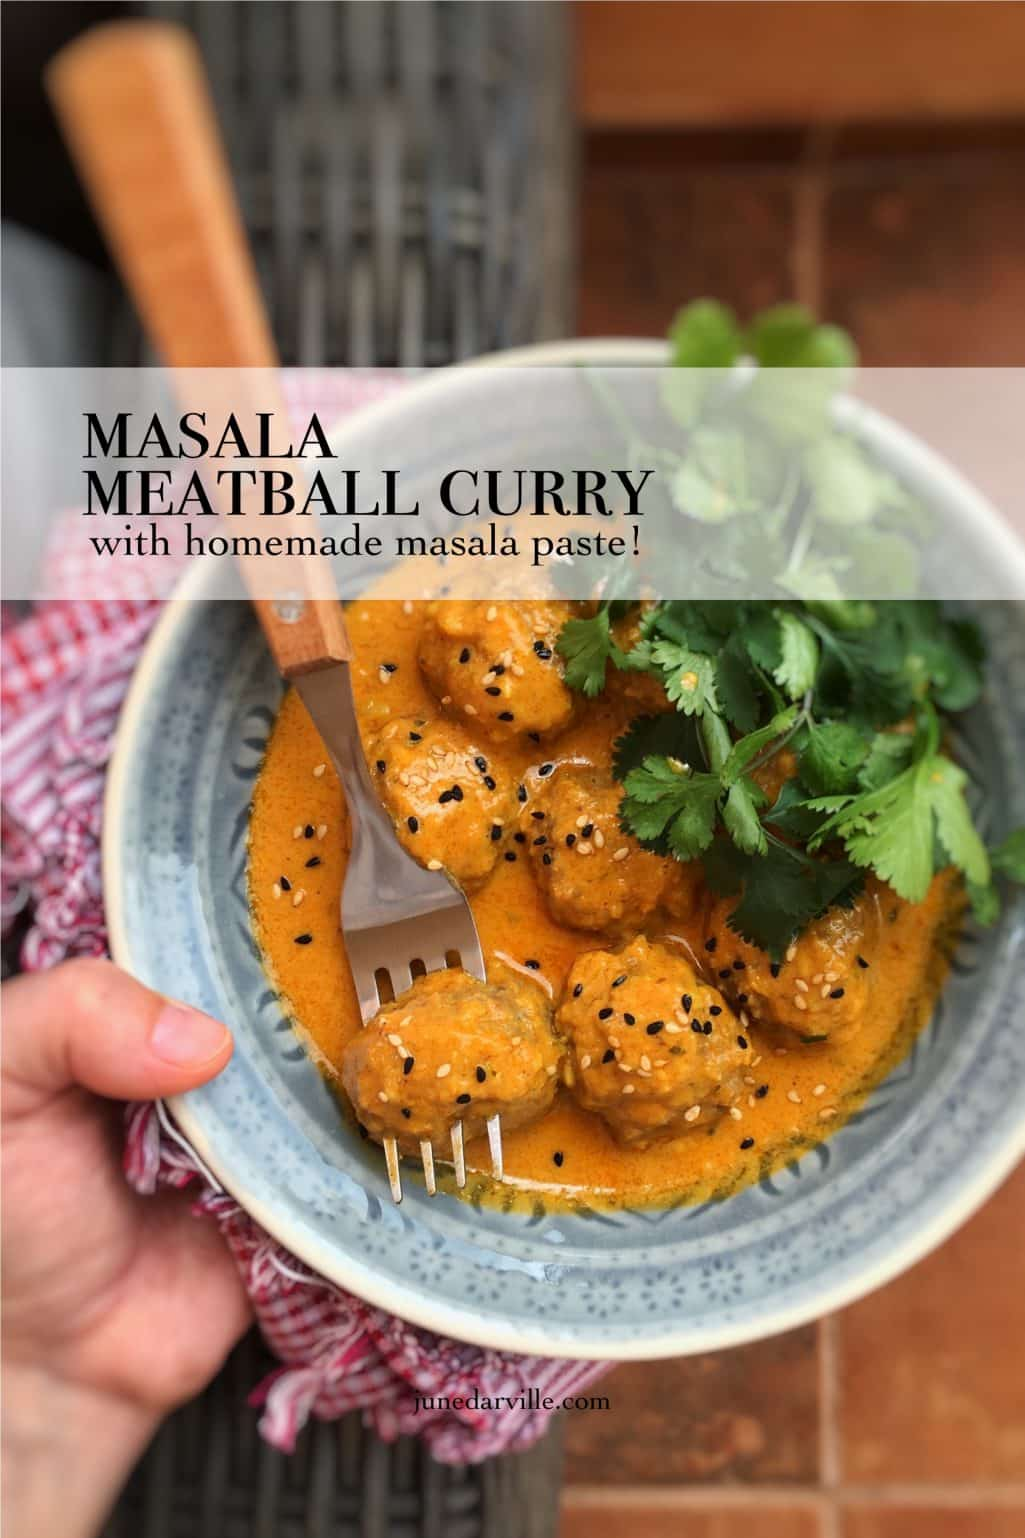 What's on the menu for dinner tonight? Let's make a creamy masala meatball curry using a bunch of fresh homemade masala paste!